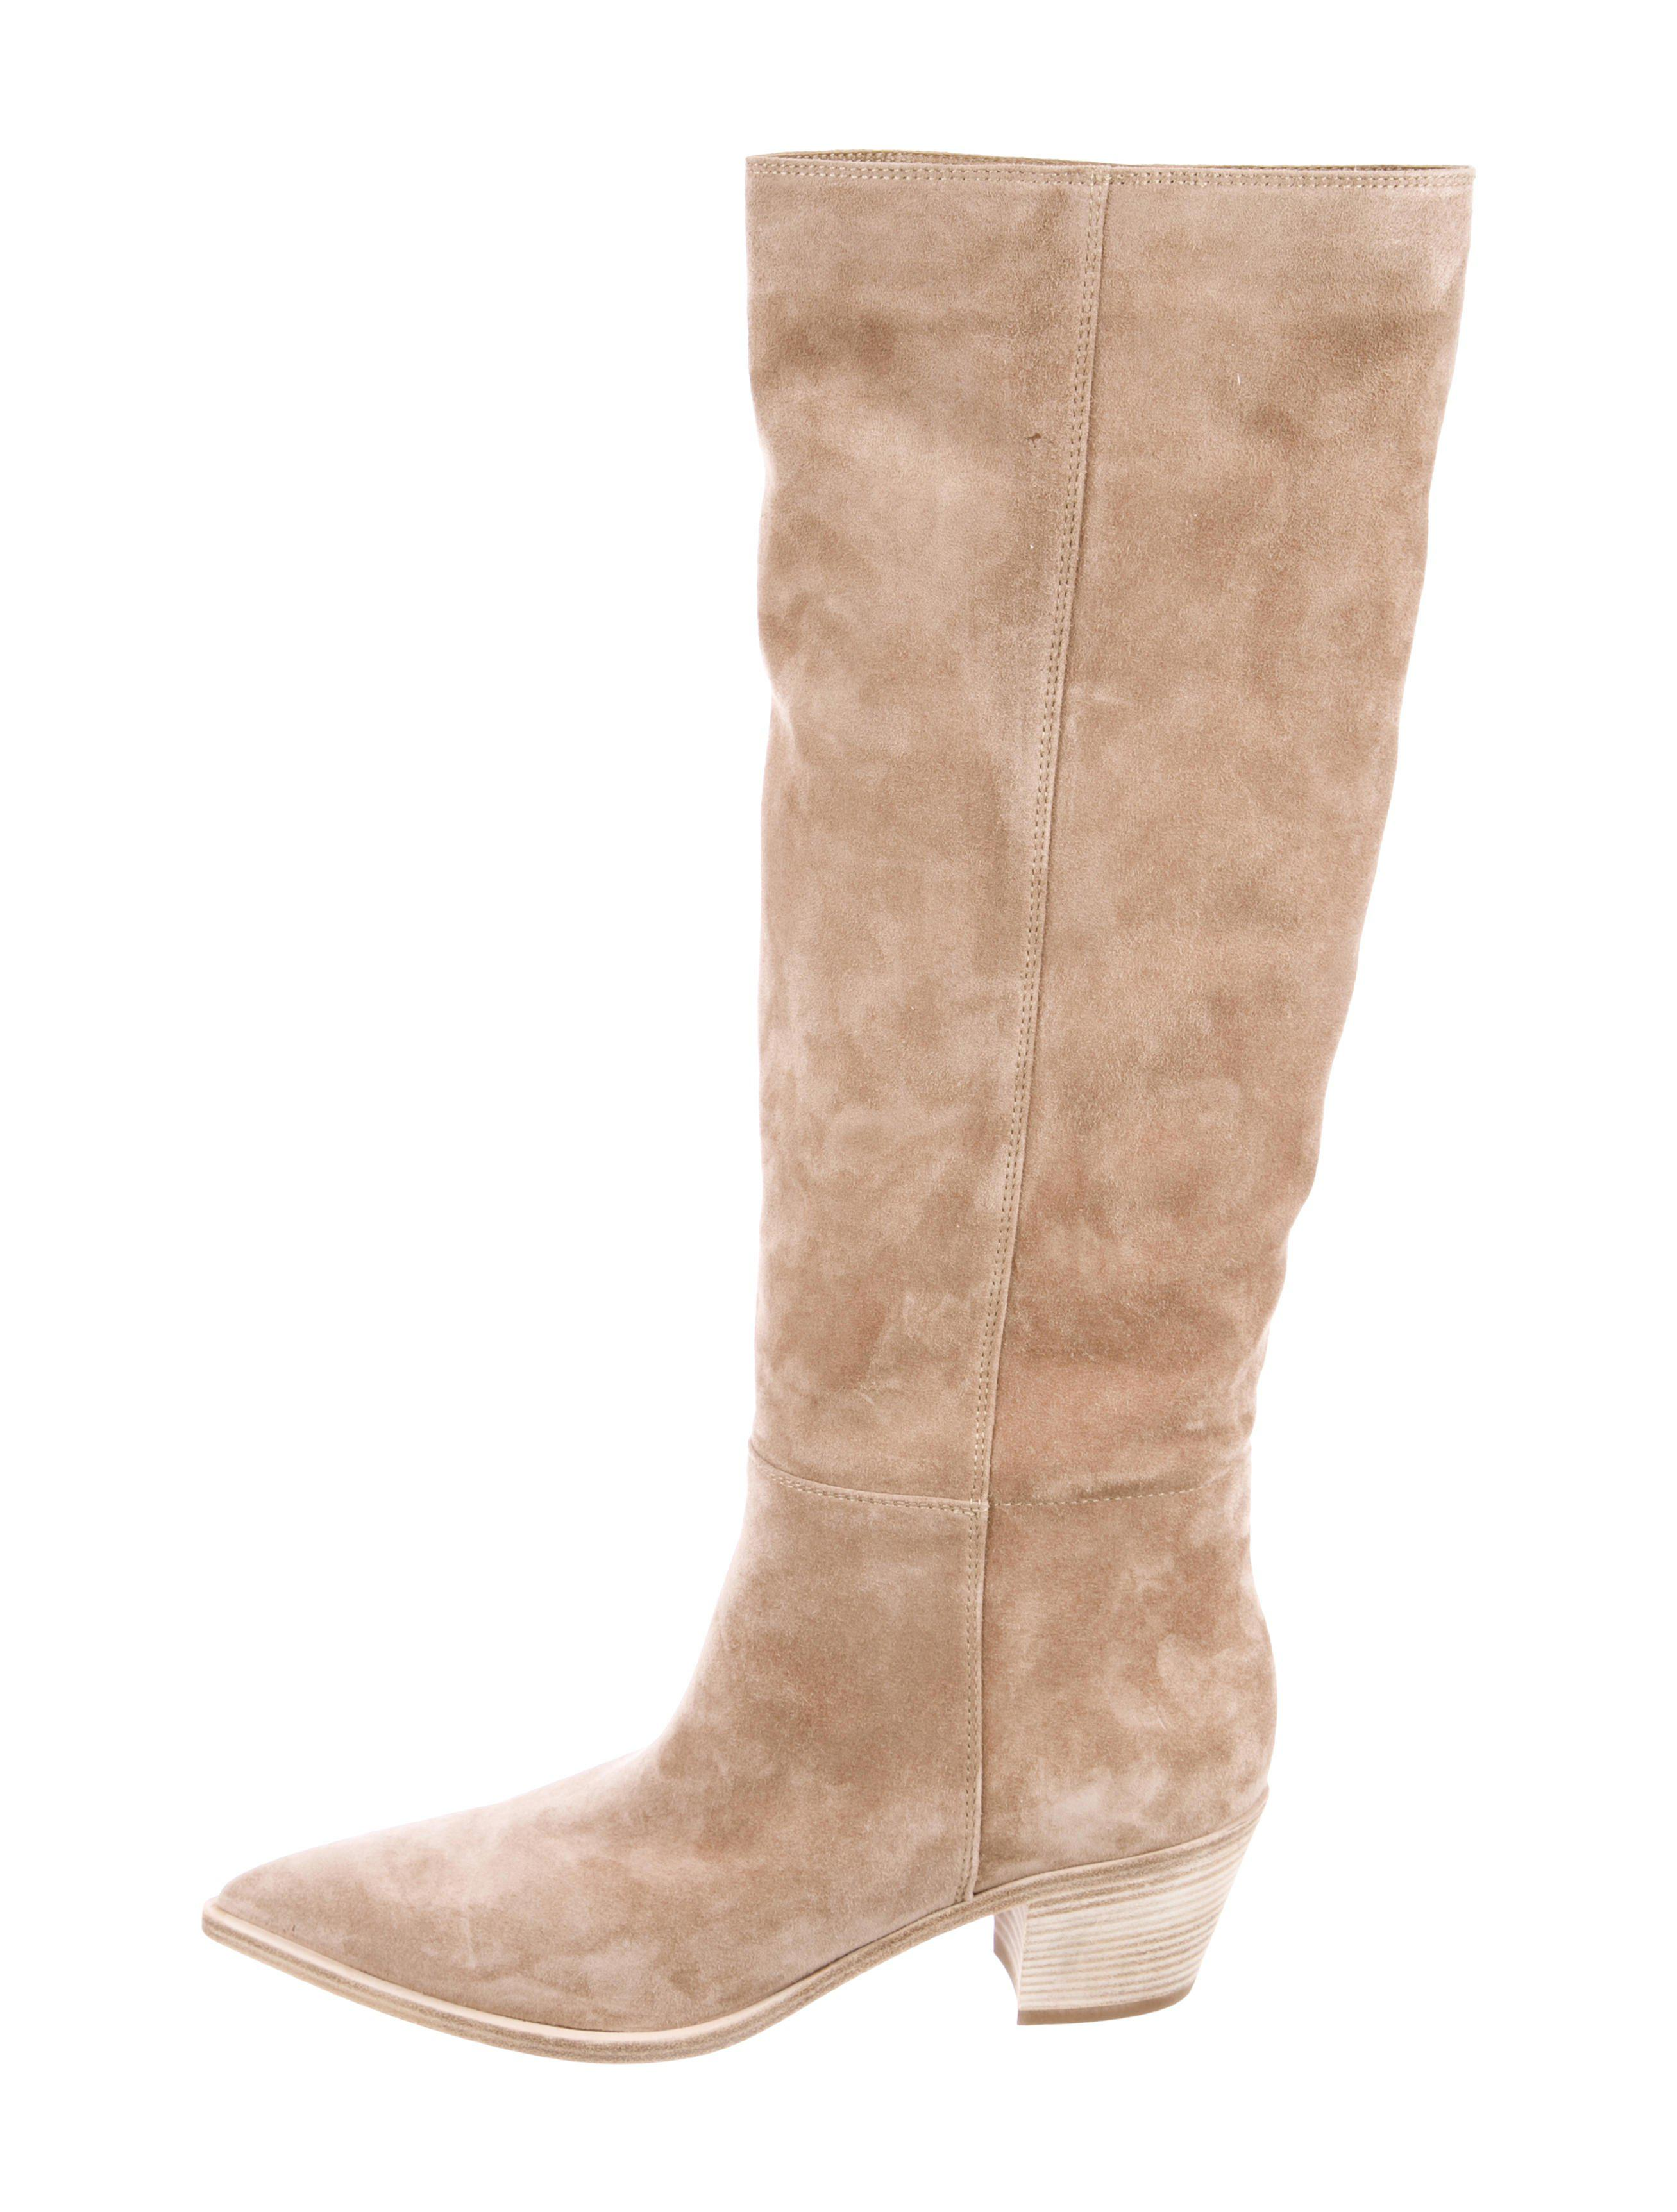 Gianvito Rossi Daenerys 45 Boots w/ Tags order online free shipping ebay for sale online Sw1z0w1